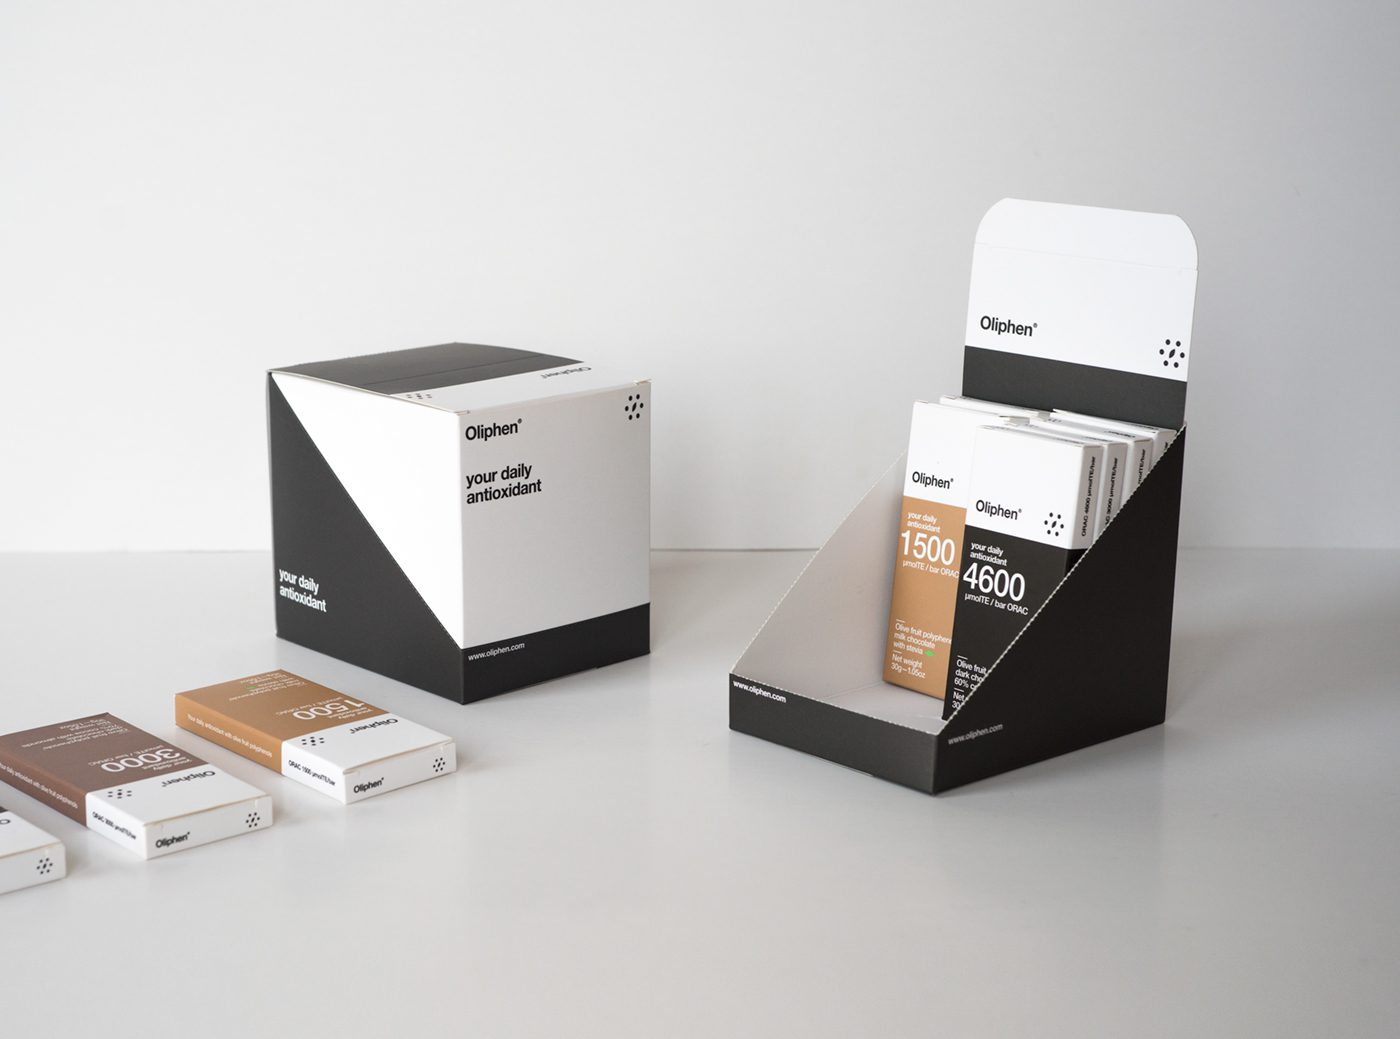 WHY DISPLAY BOXES ARE A GREAT CHOICE FOR PACKAGING